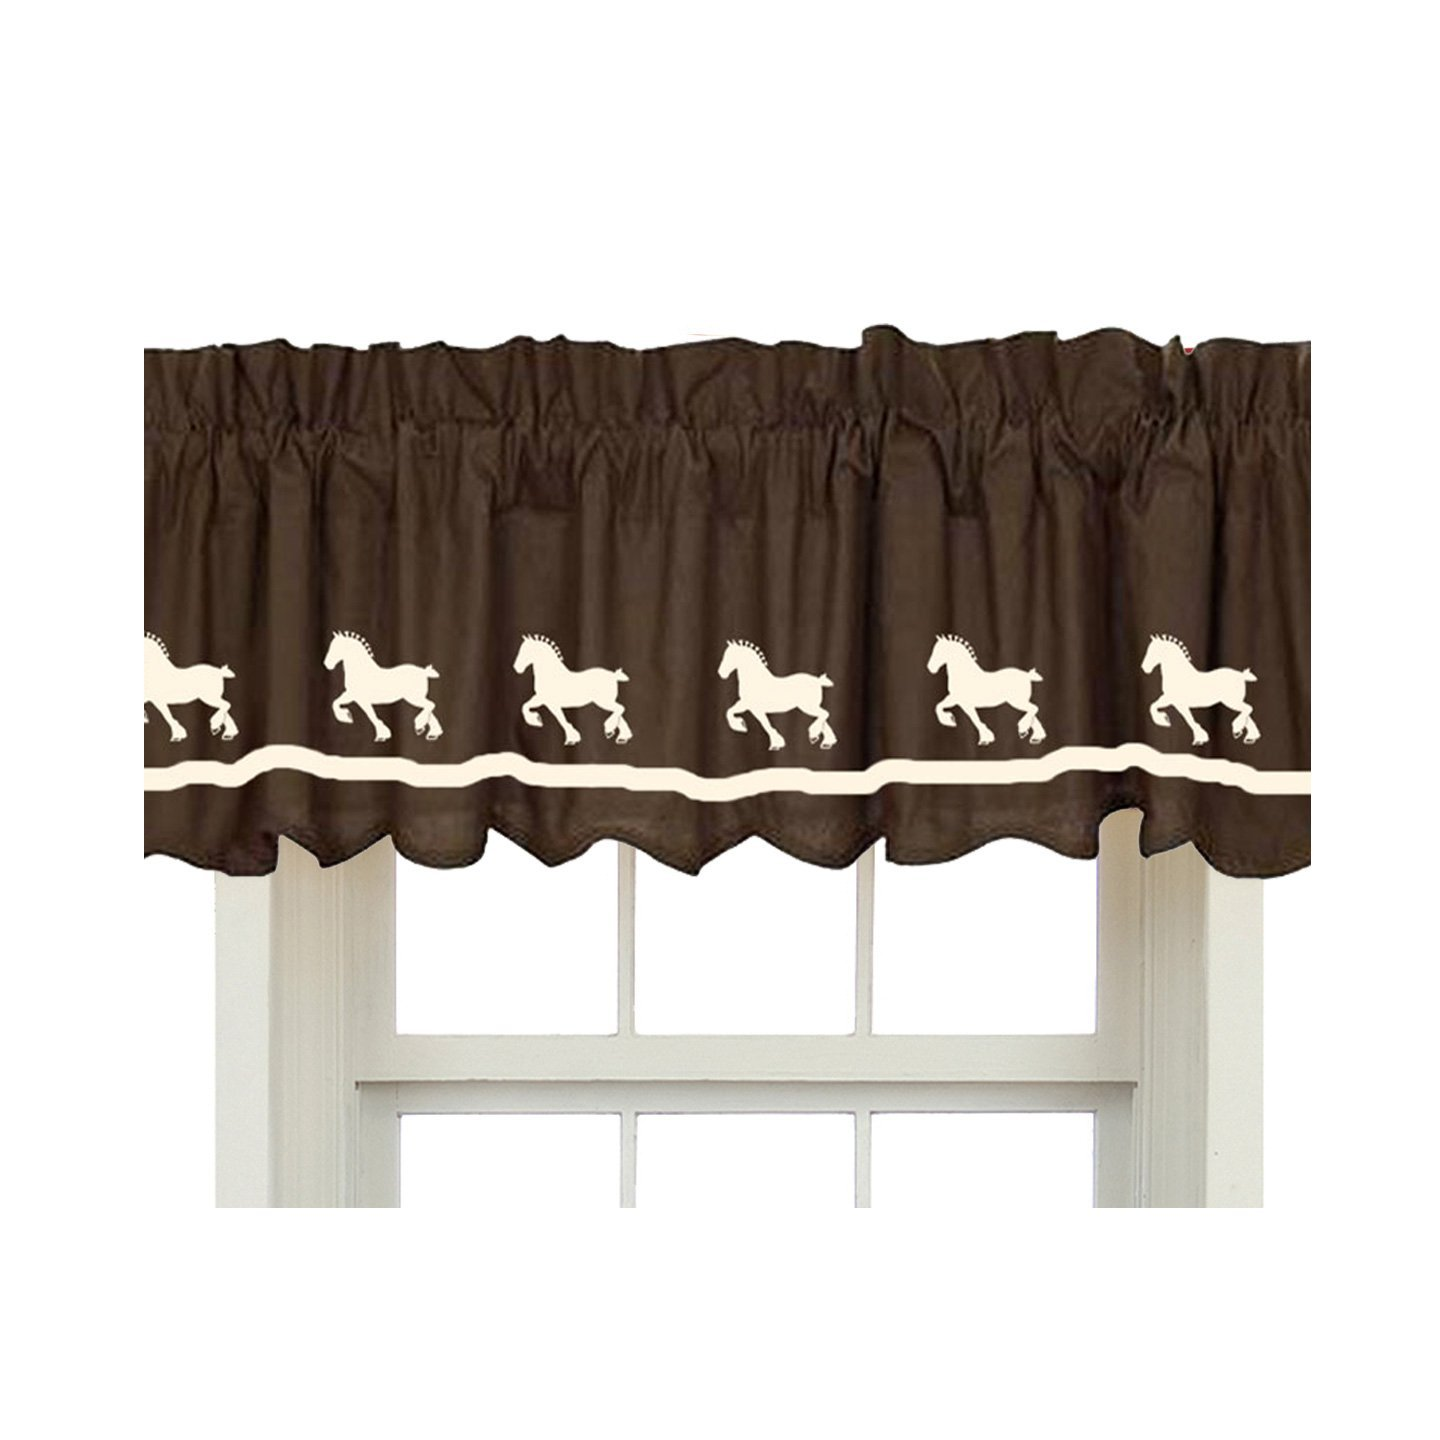 Belgian Draft Horse Window Valance Window Treatment – In Your Choice of Colors – Custom Made